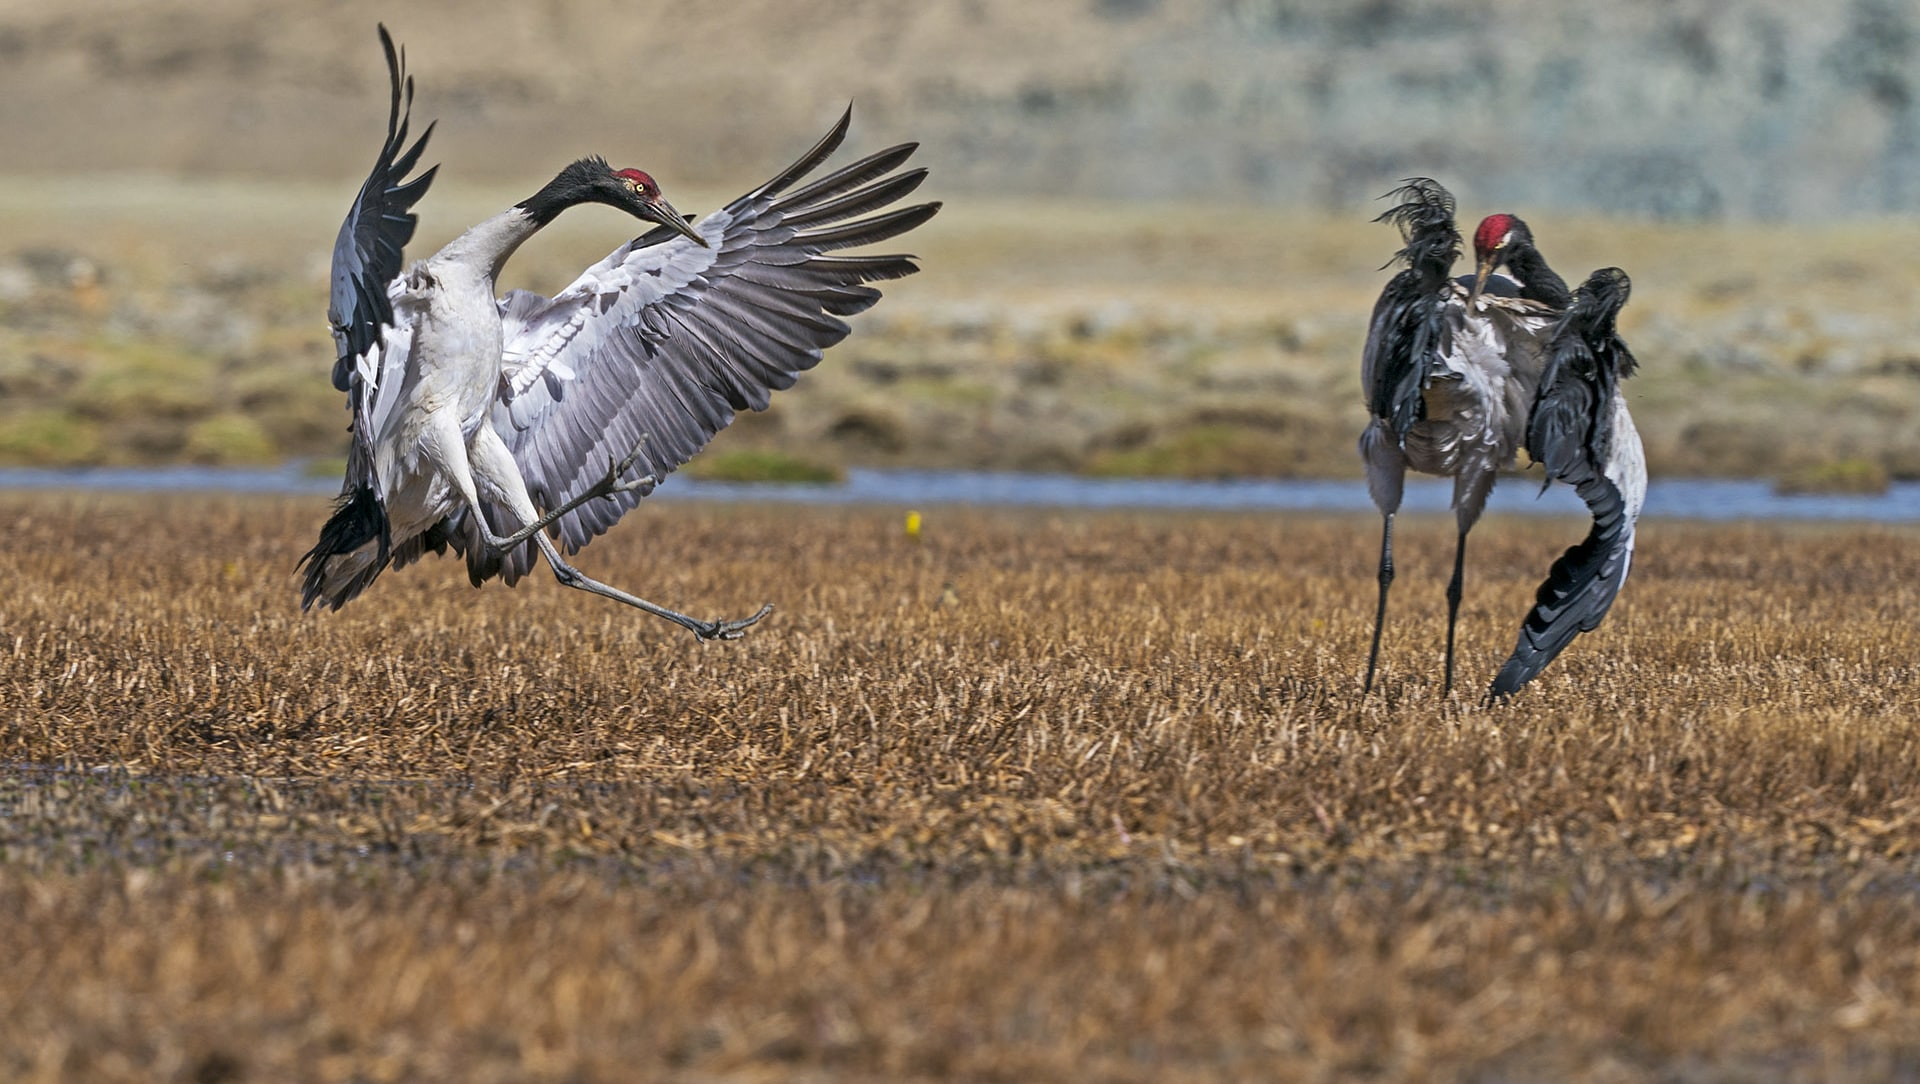 Dance of the Black-necked Cranes in Ladakh